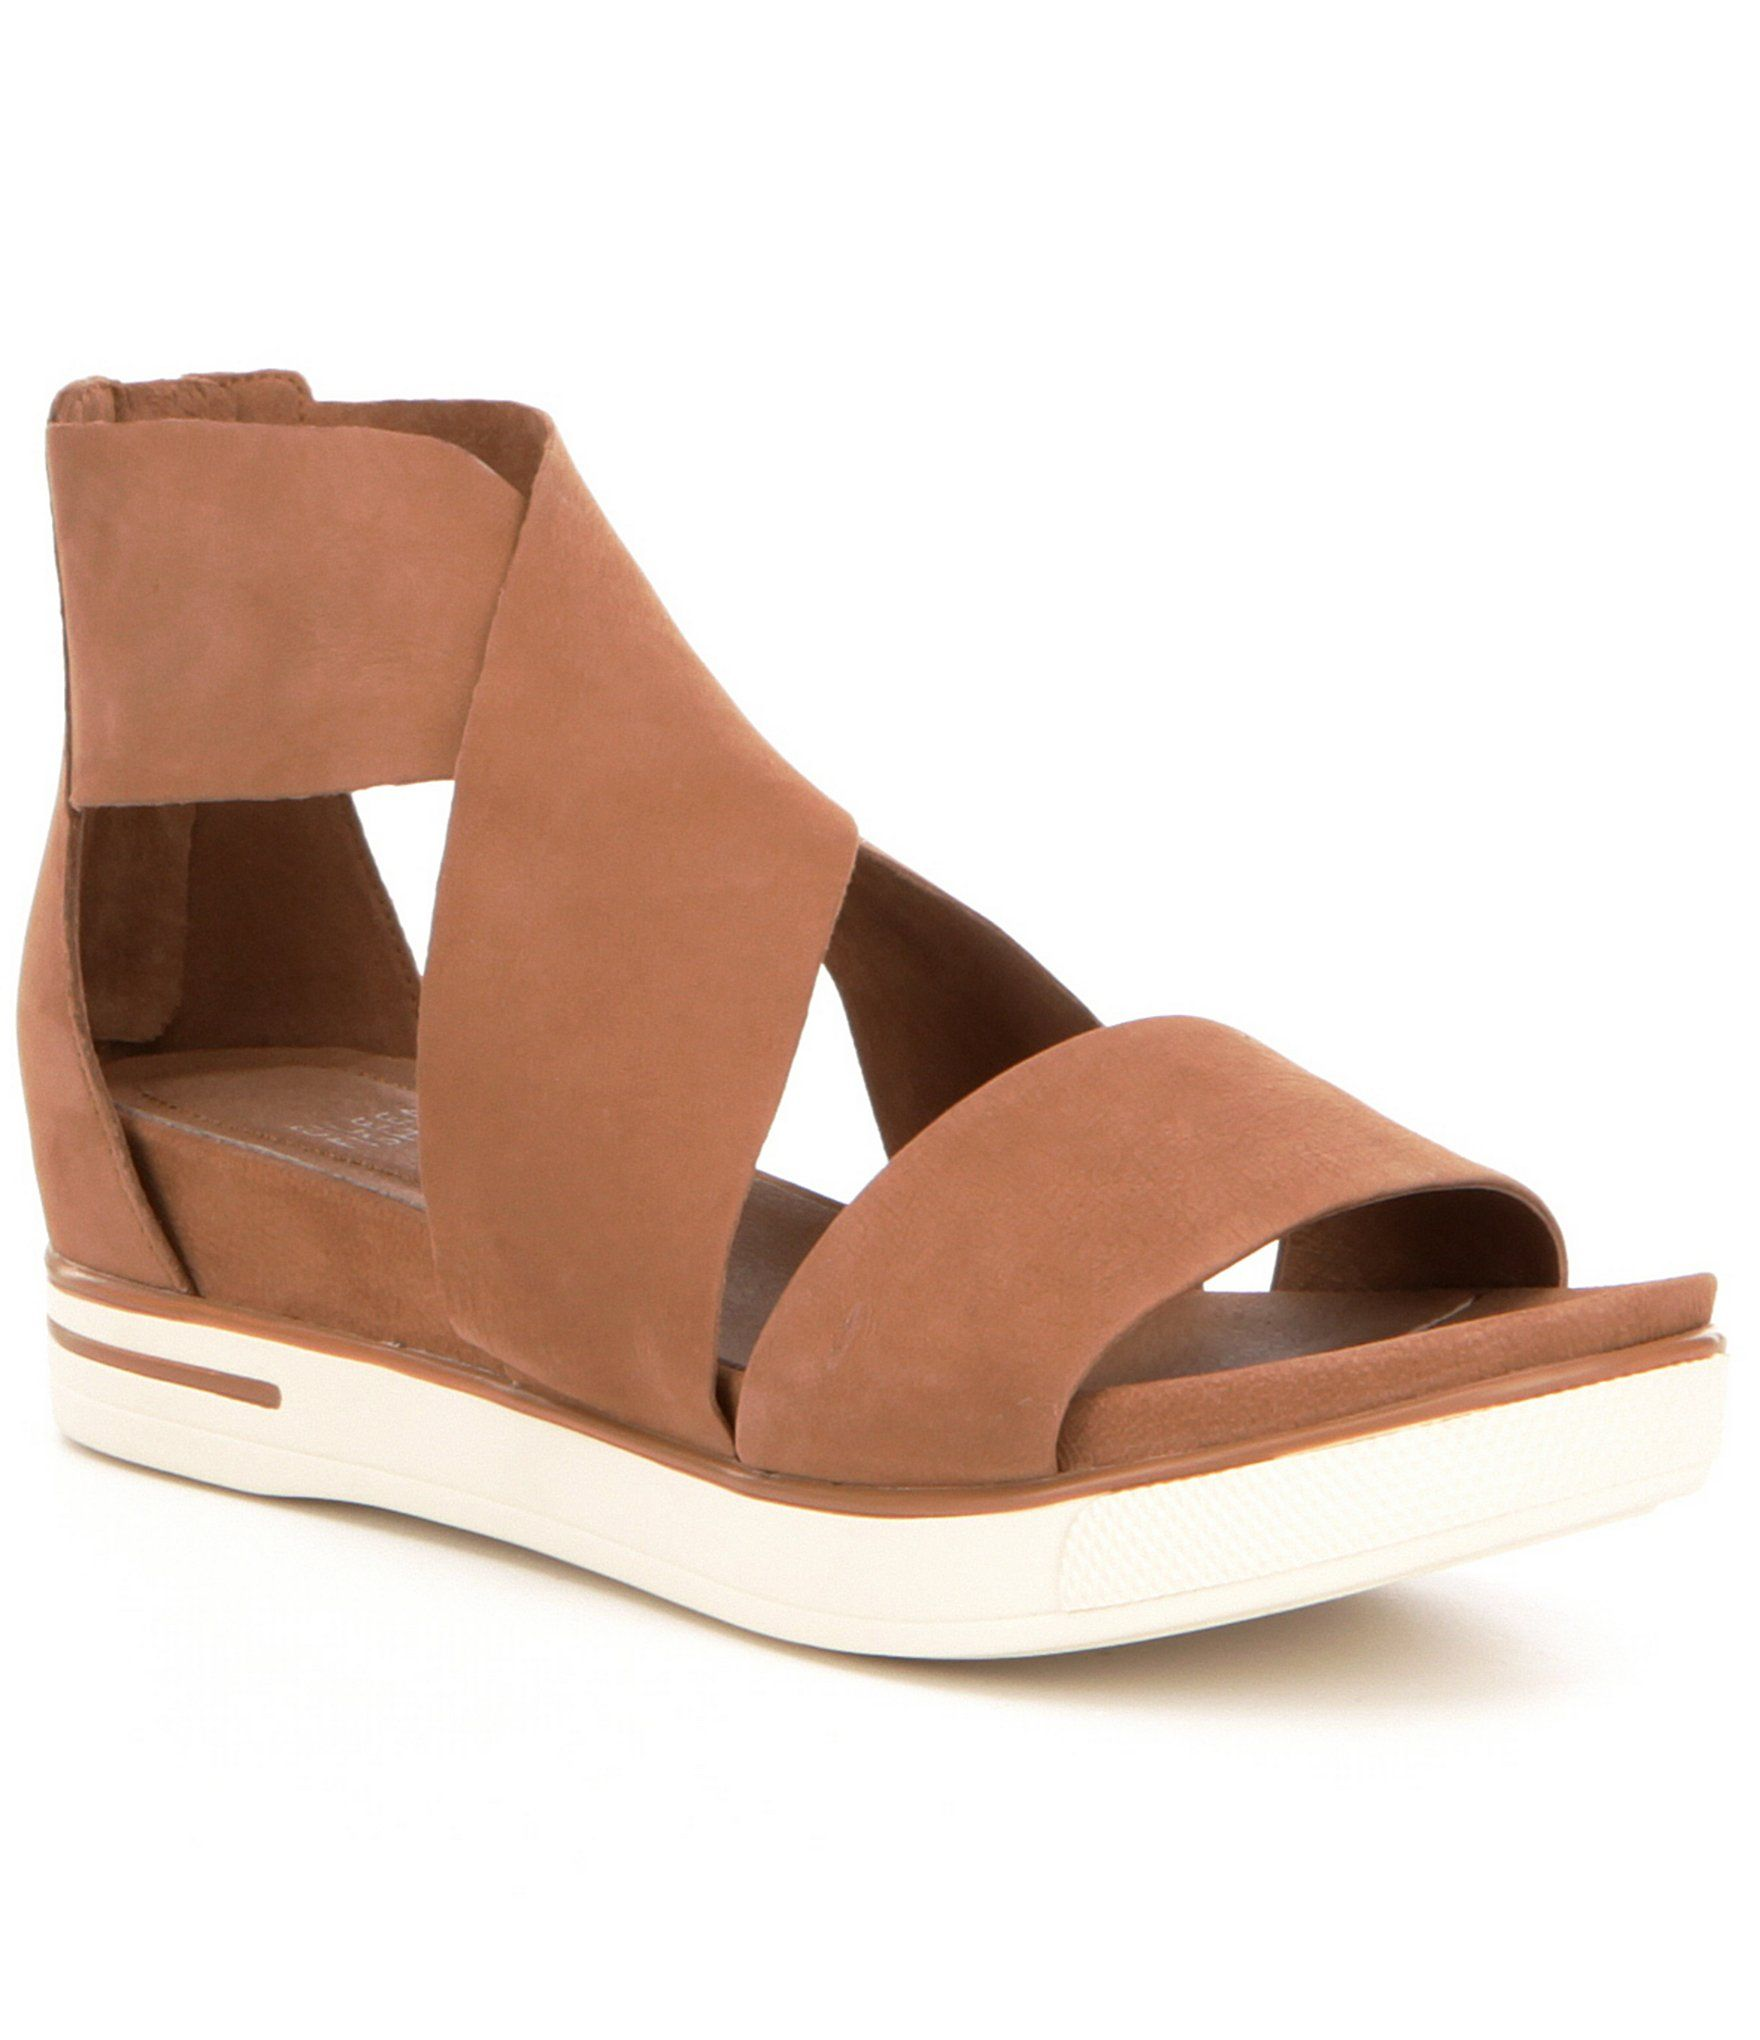 5cc9b7aa3084 Eileen Fisher Tumbled Leather Criss Cross Banded Backstrap Sport Sandals   Dillards